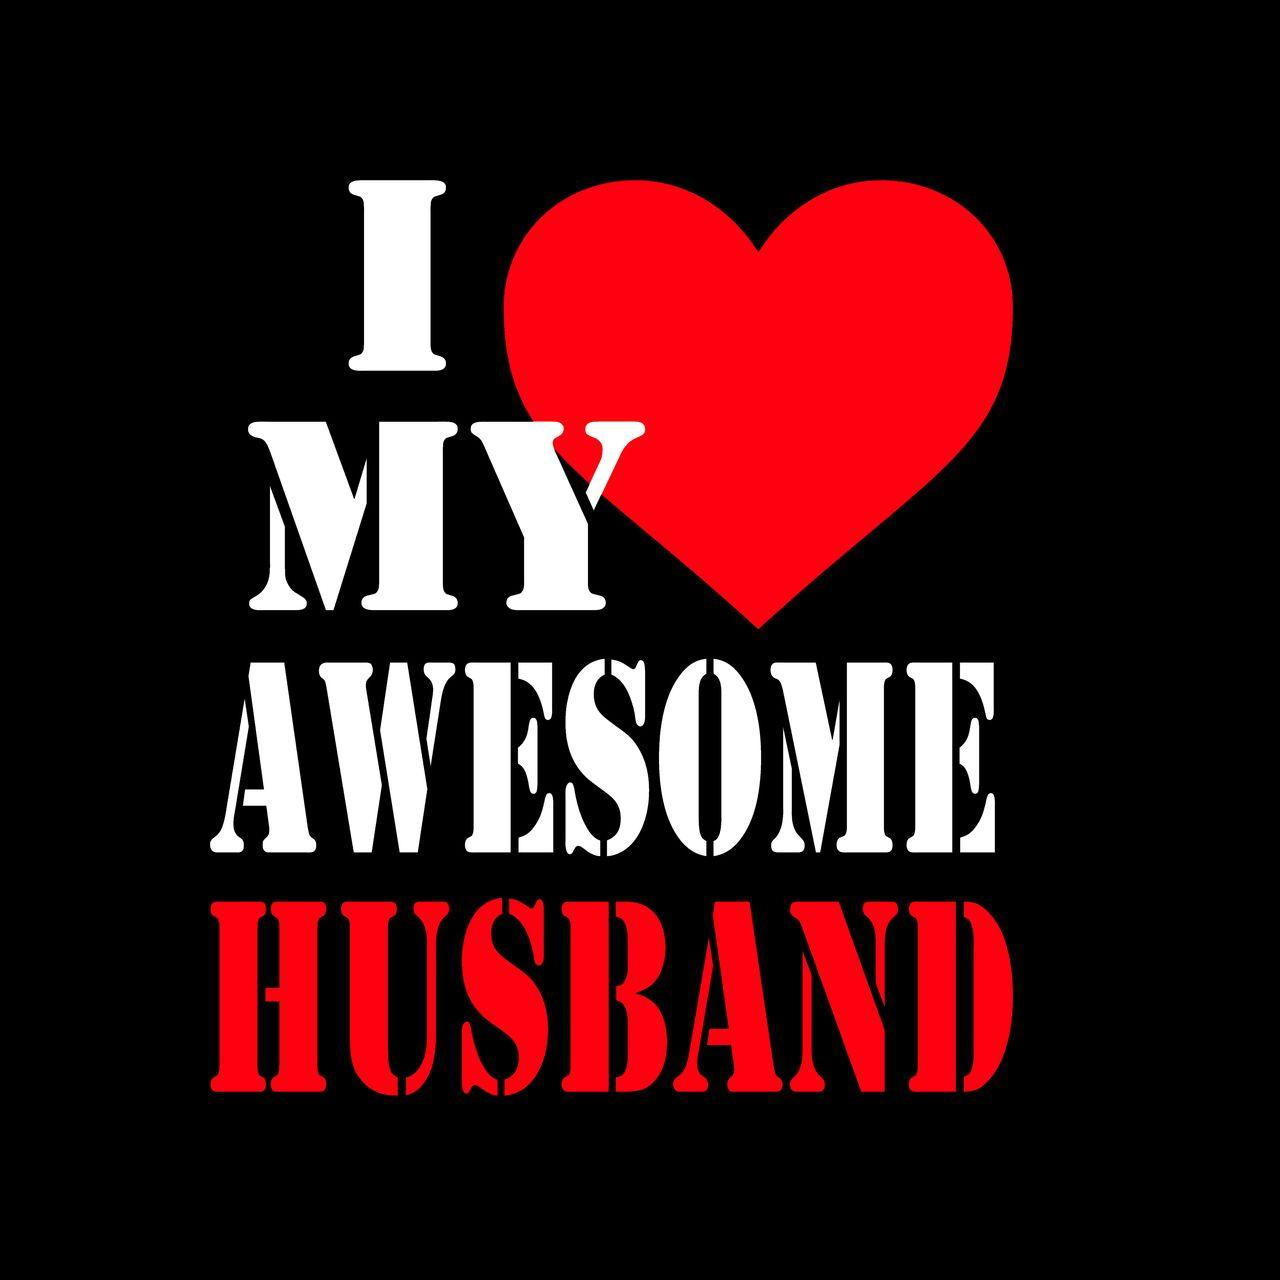 Love Wallpapers For Husband : I Love My Husband Wallpapers - Wallpaper cave